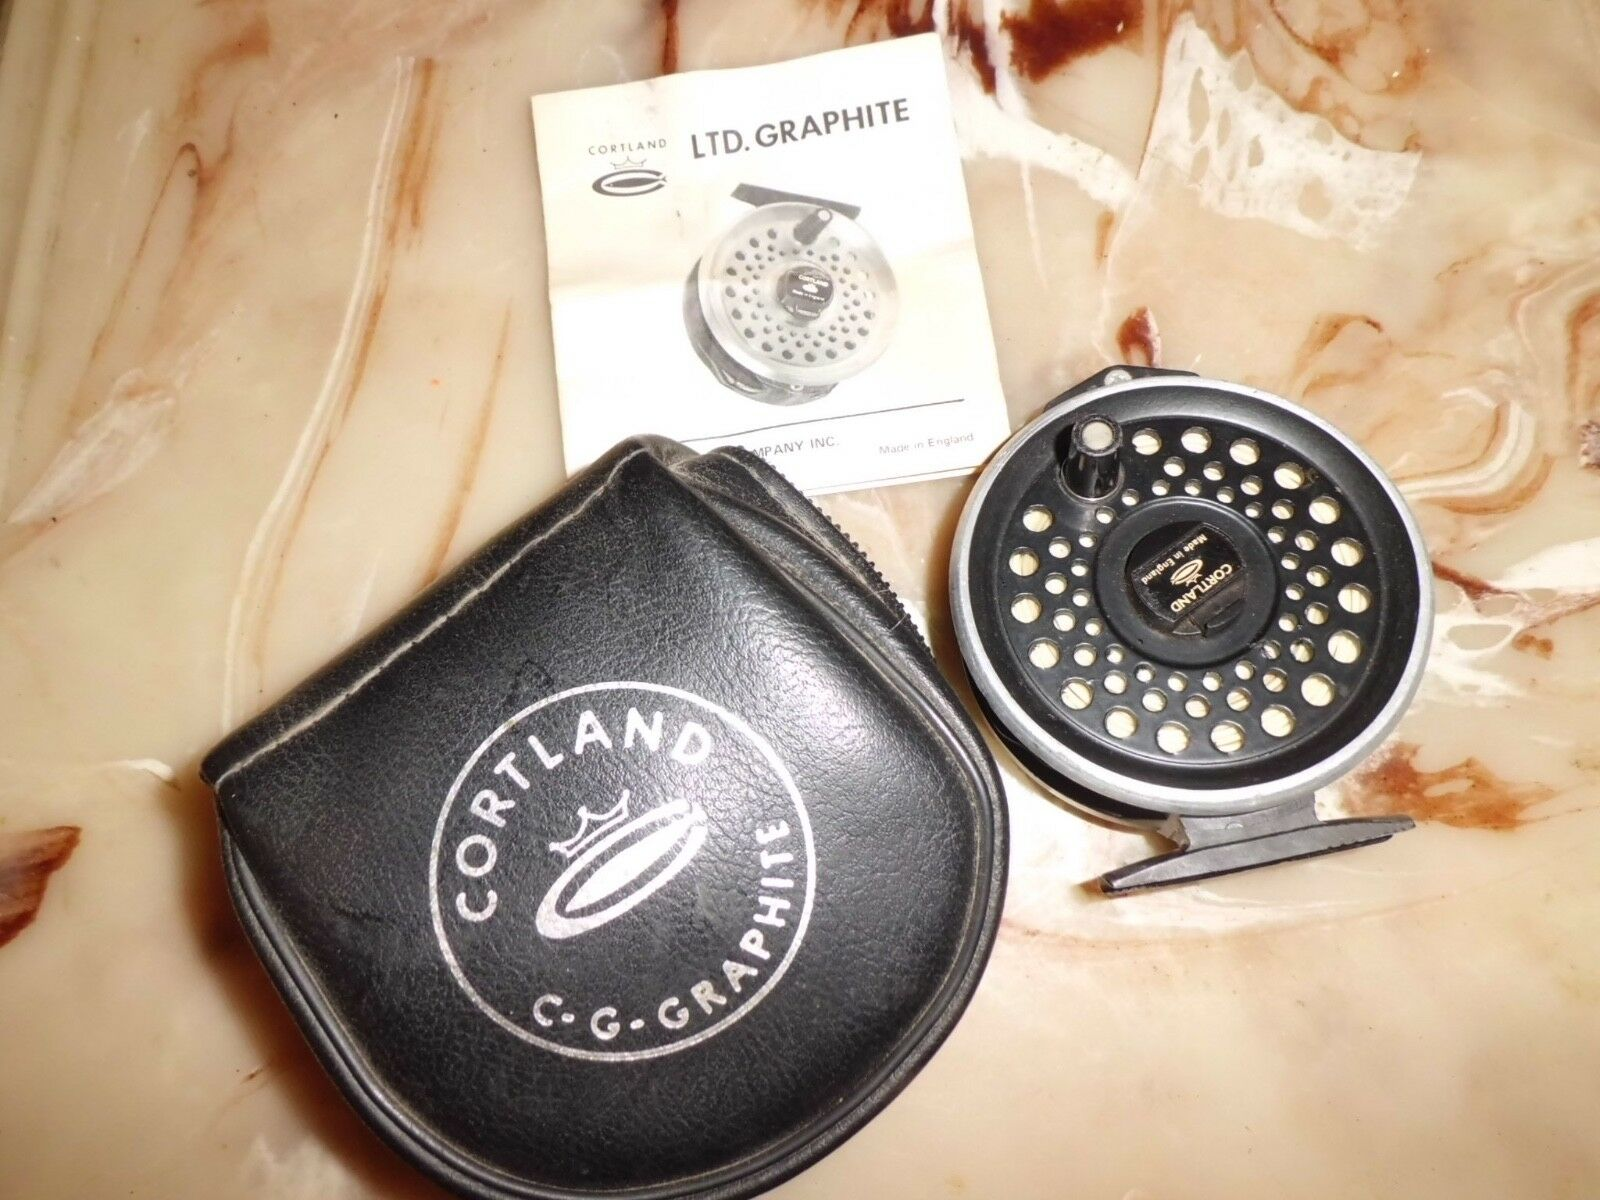 Cortland LTD Graphite Single Action Action Single Fly Reel made in England f2905b